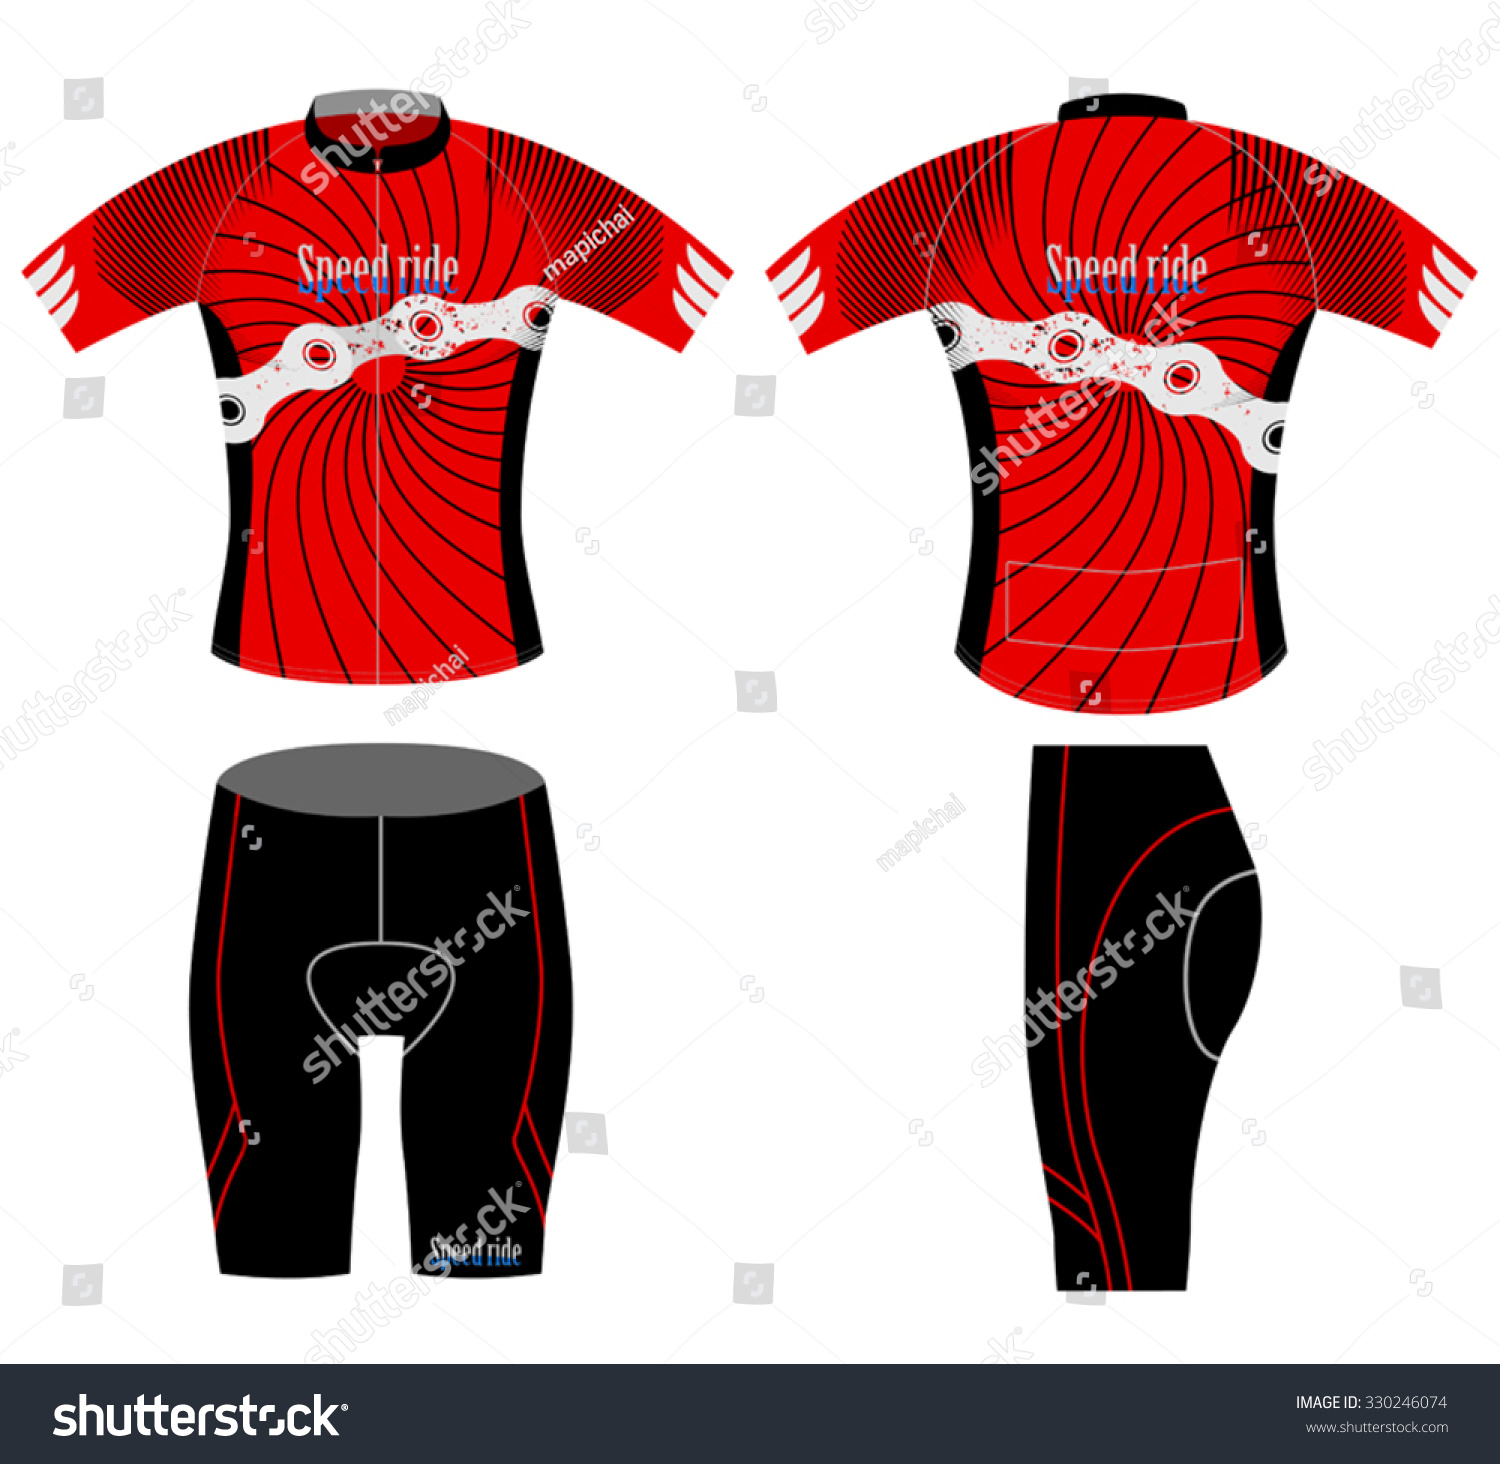 Speed ride sports tshirtcycling vest design stock vector for Stock t shirt designs